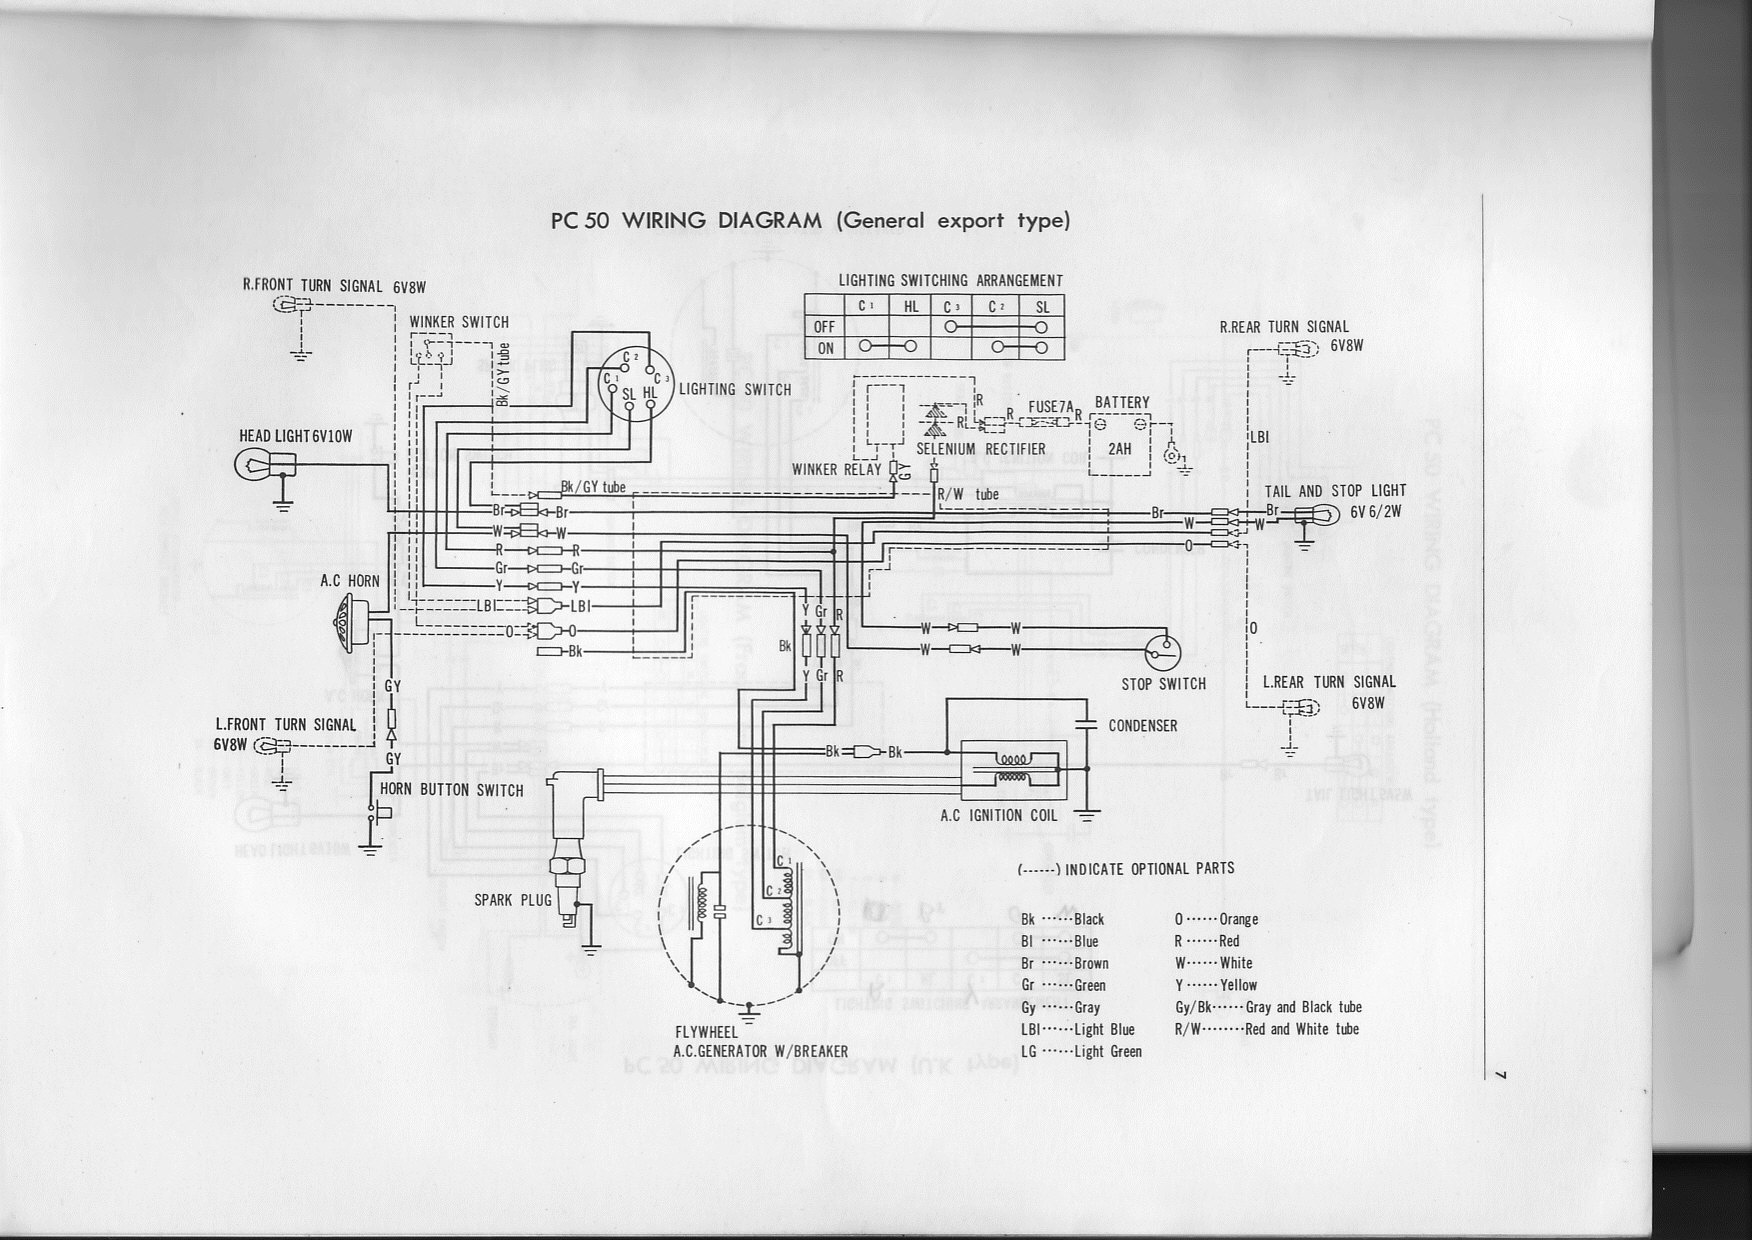 1214006977_pc50_wiring_diagram.img · fourstrokebarn wiring diagram yamaha tzr 50